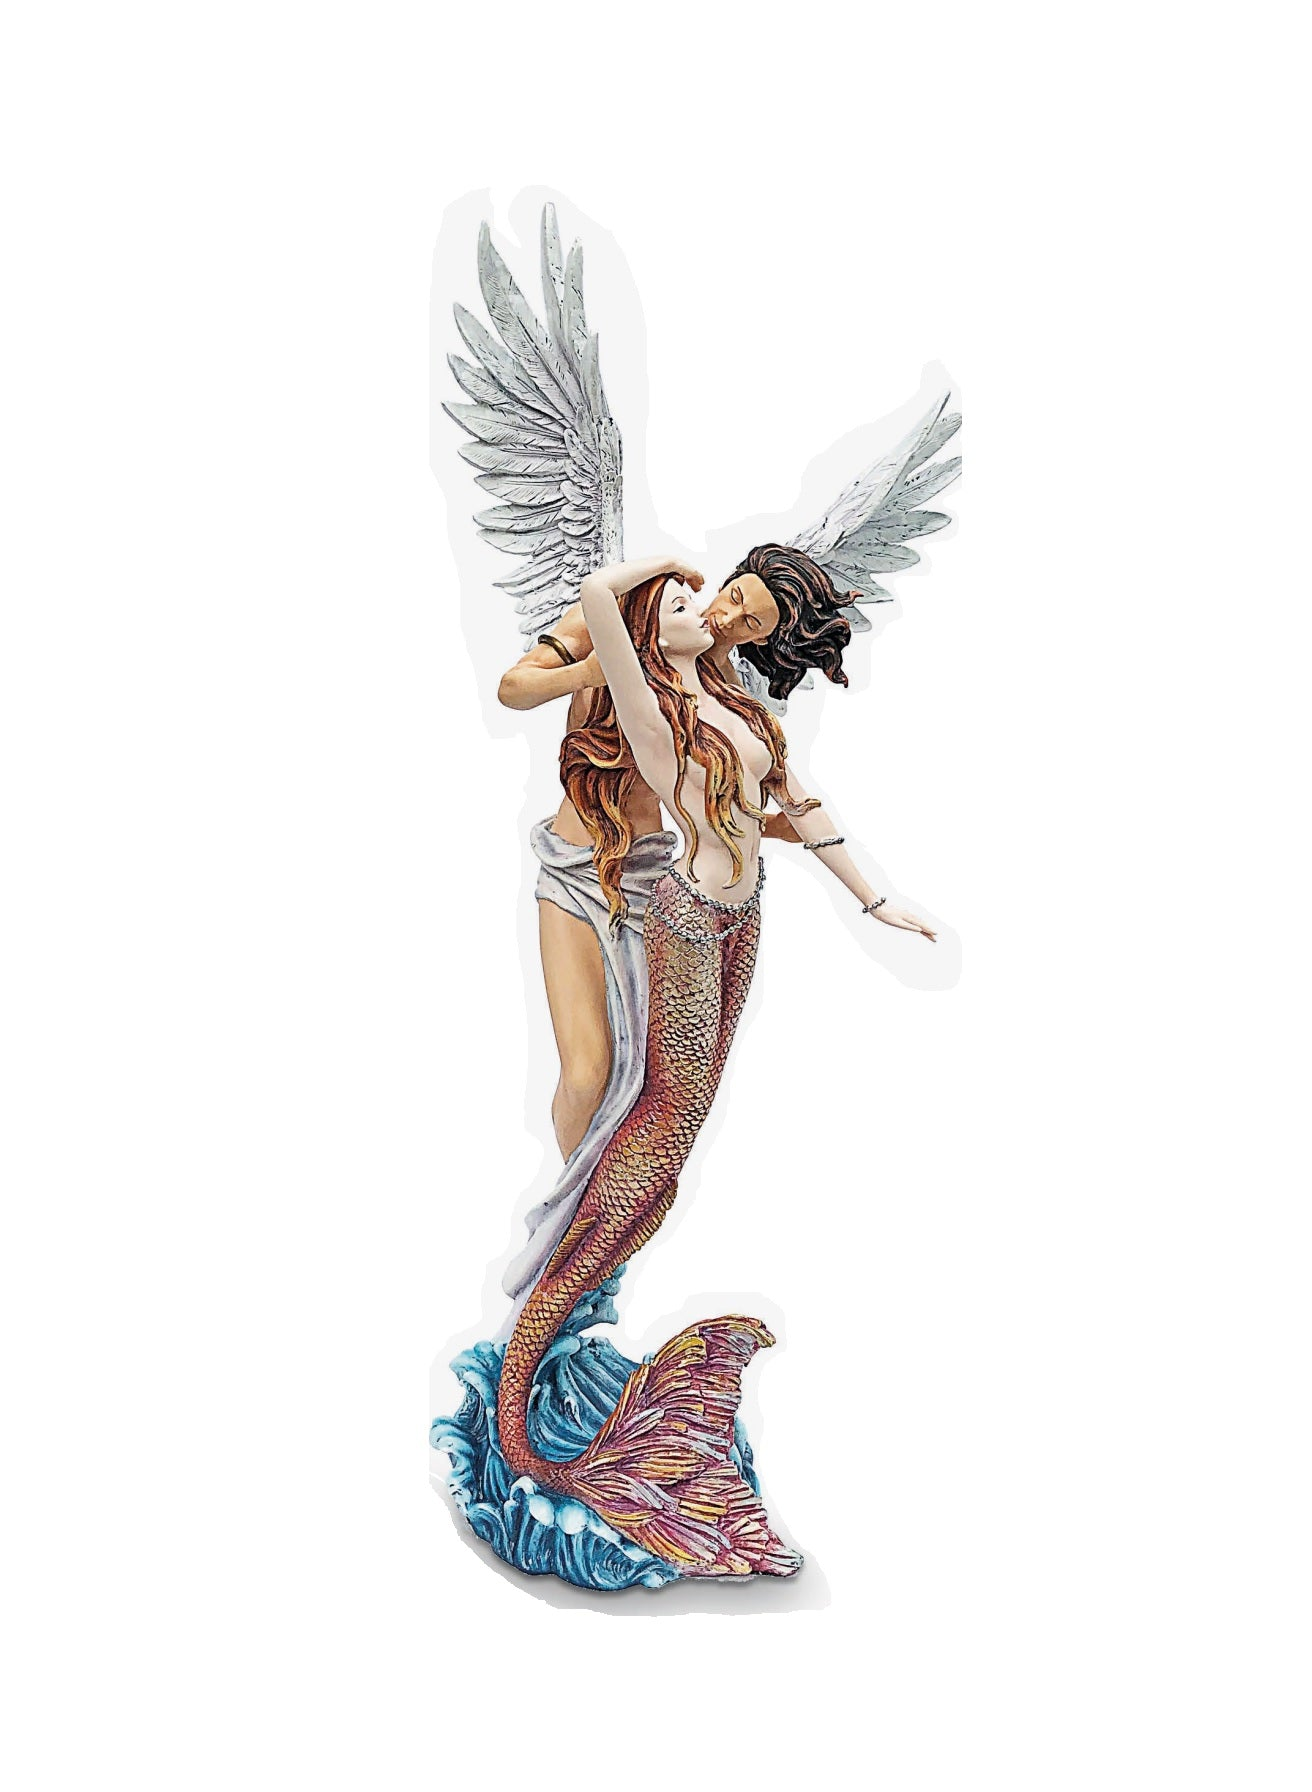 AMORE IMPOSSIBILE, maxi 63,5cm, Guardian Angels